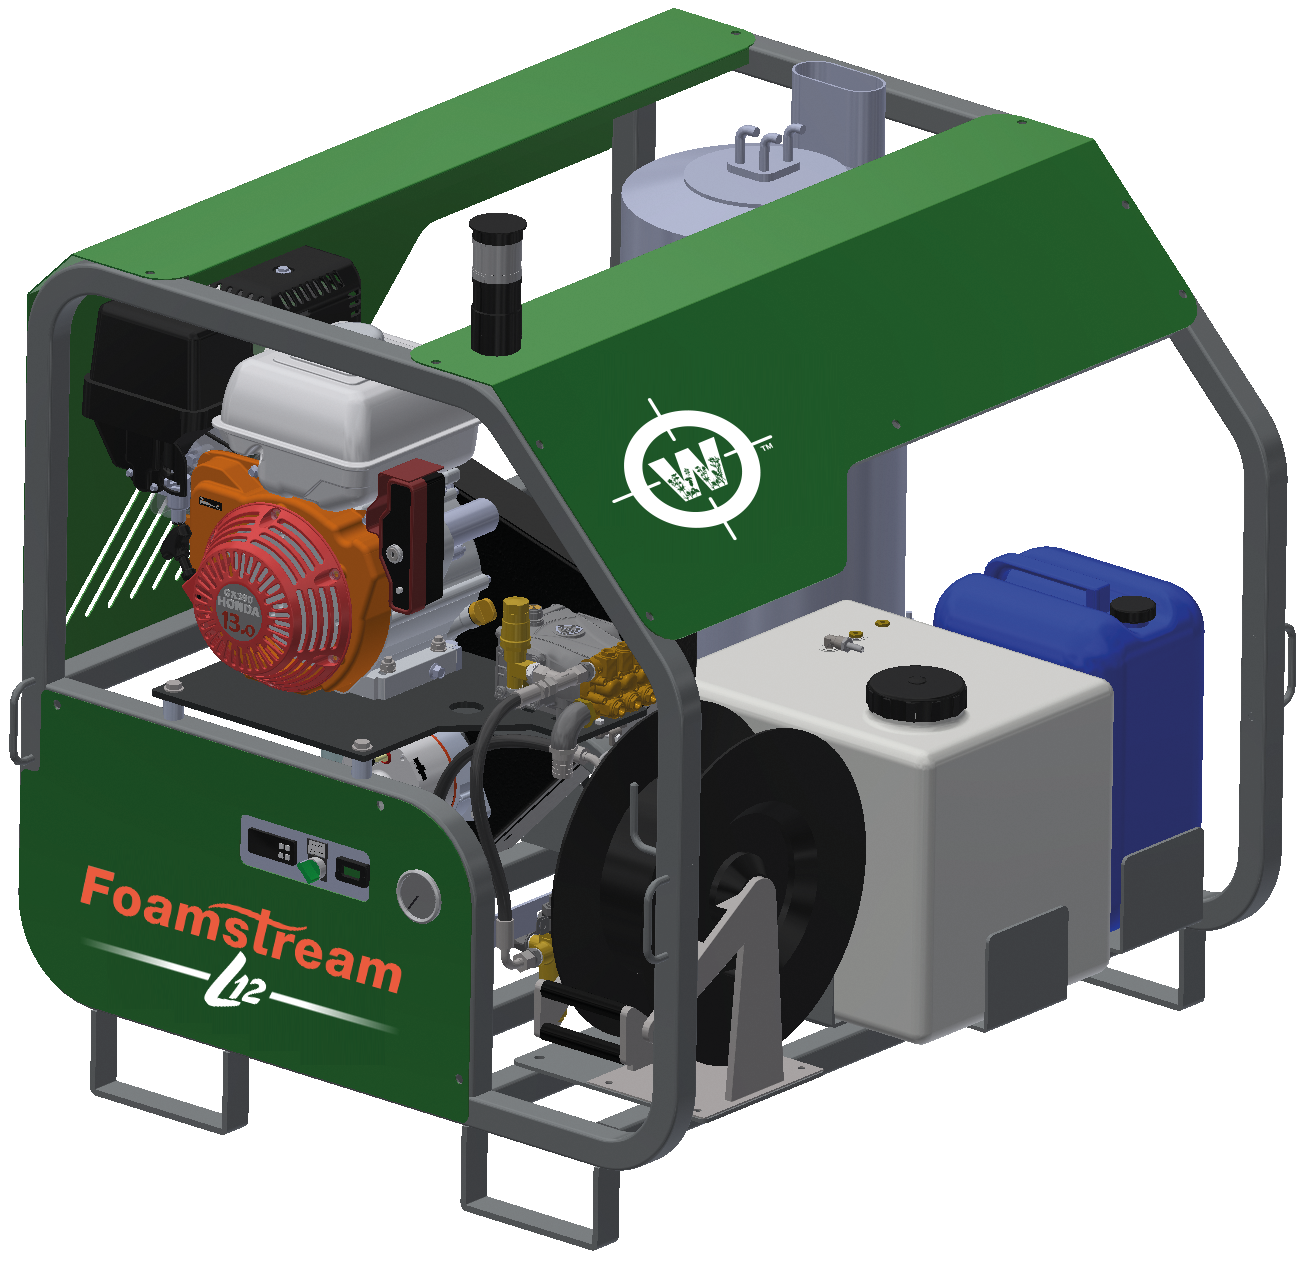 Foamstream L12 weed control machine with added cleaning functionality